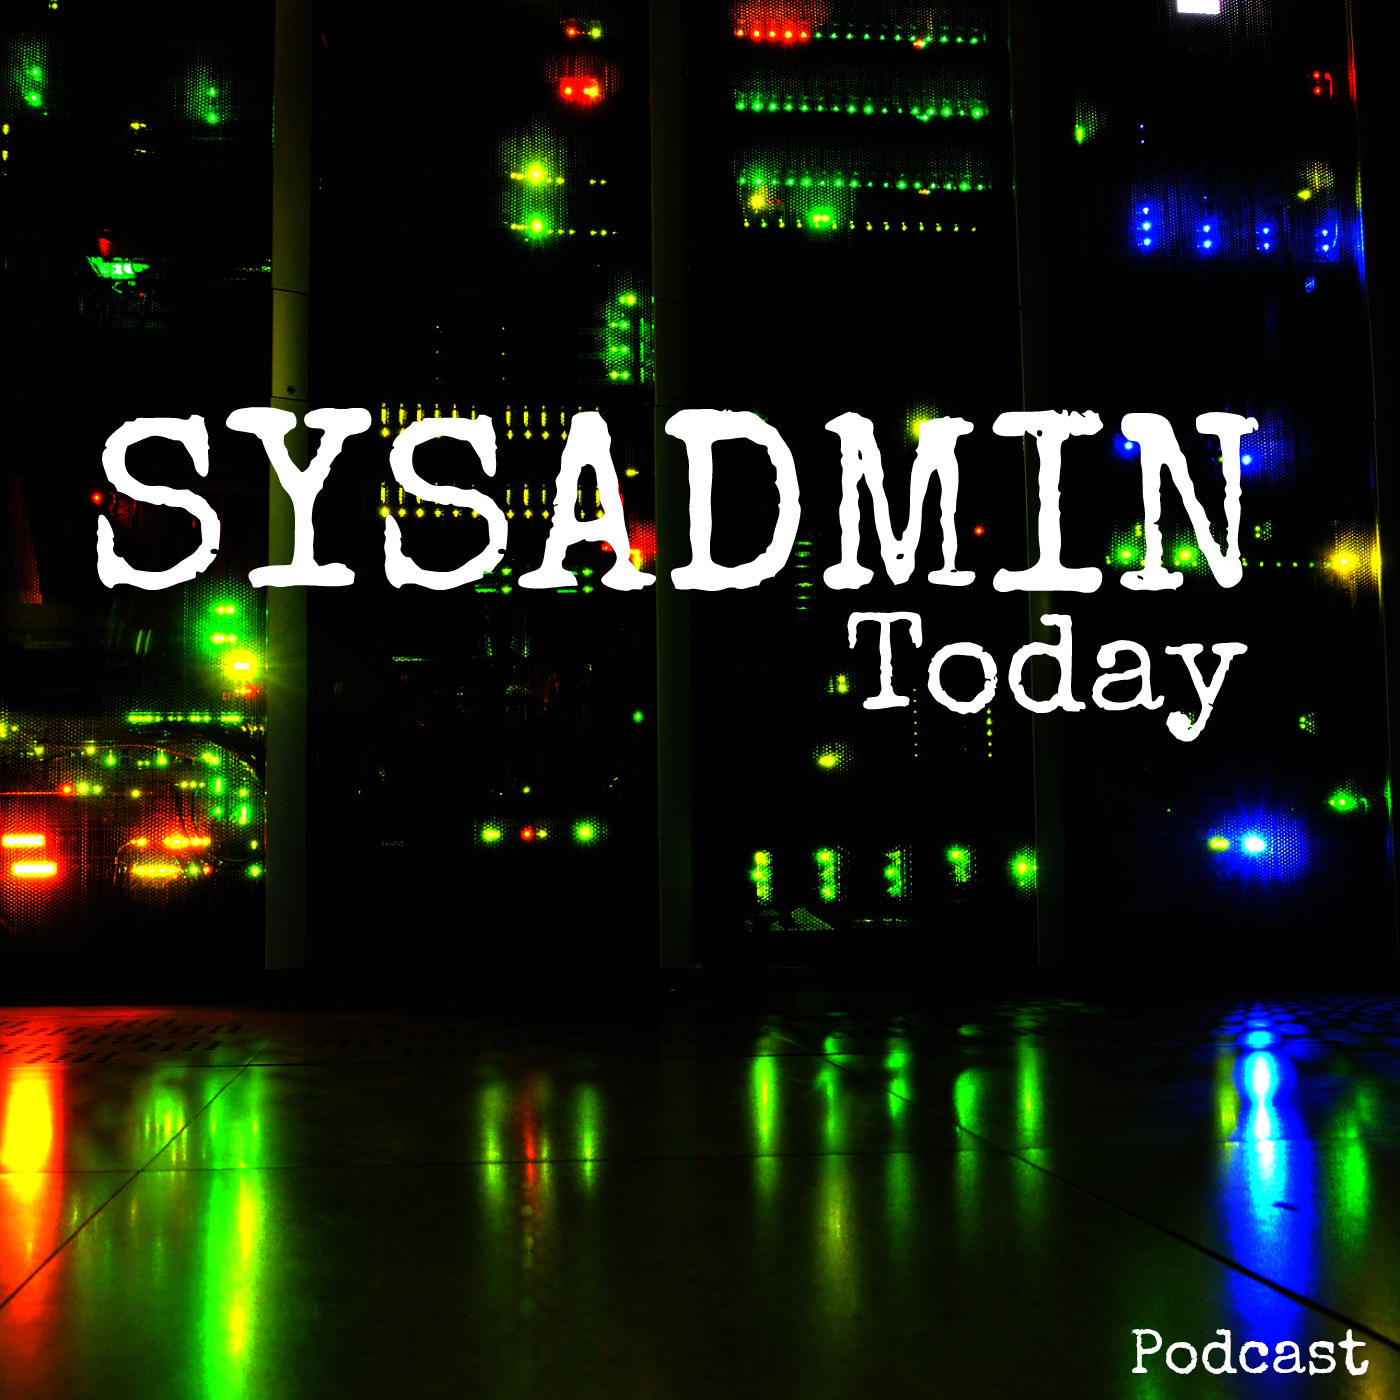 Sysadmin Today Podcast - Archives